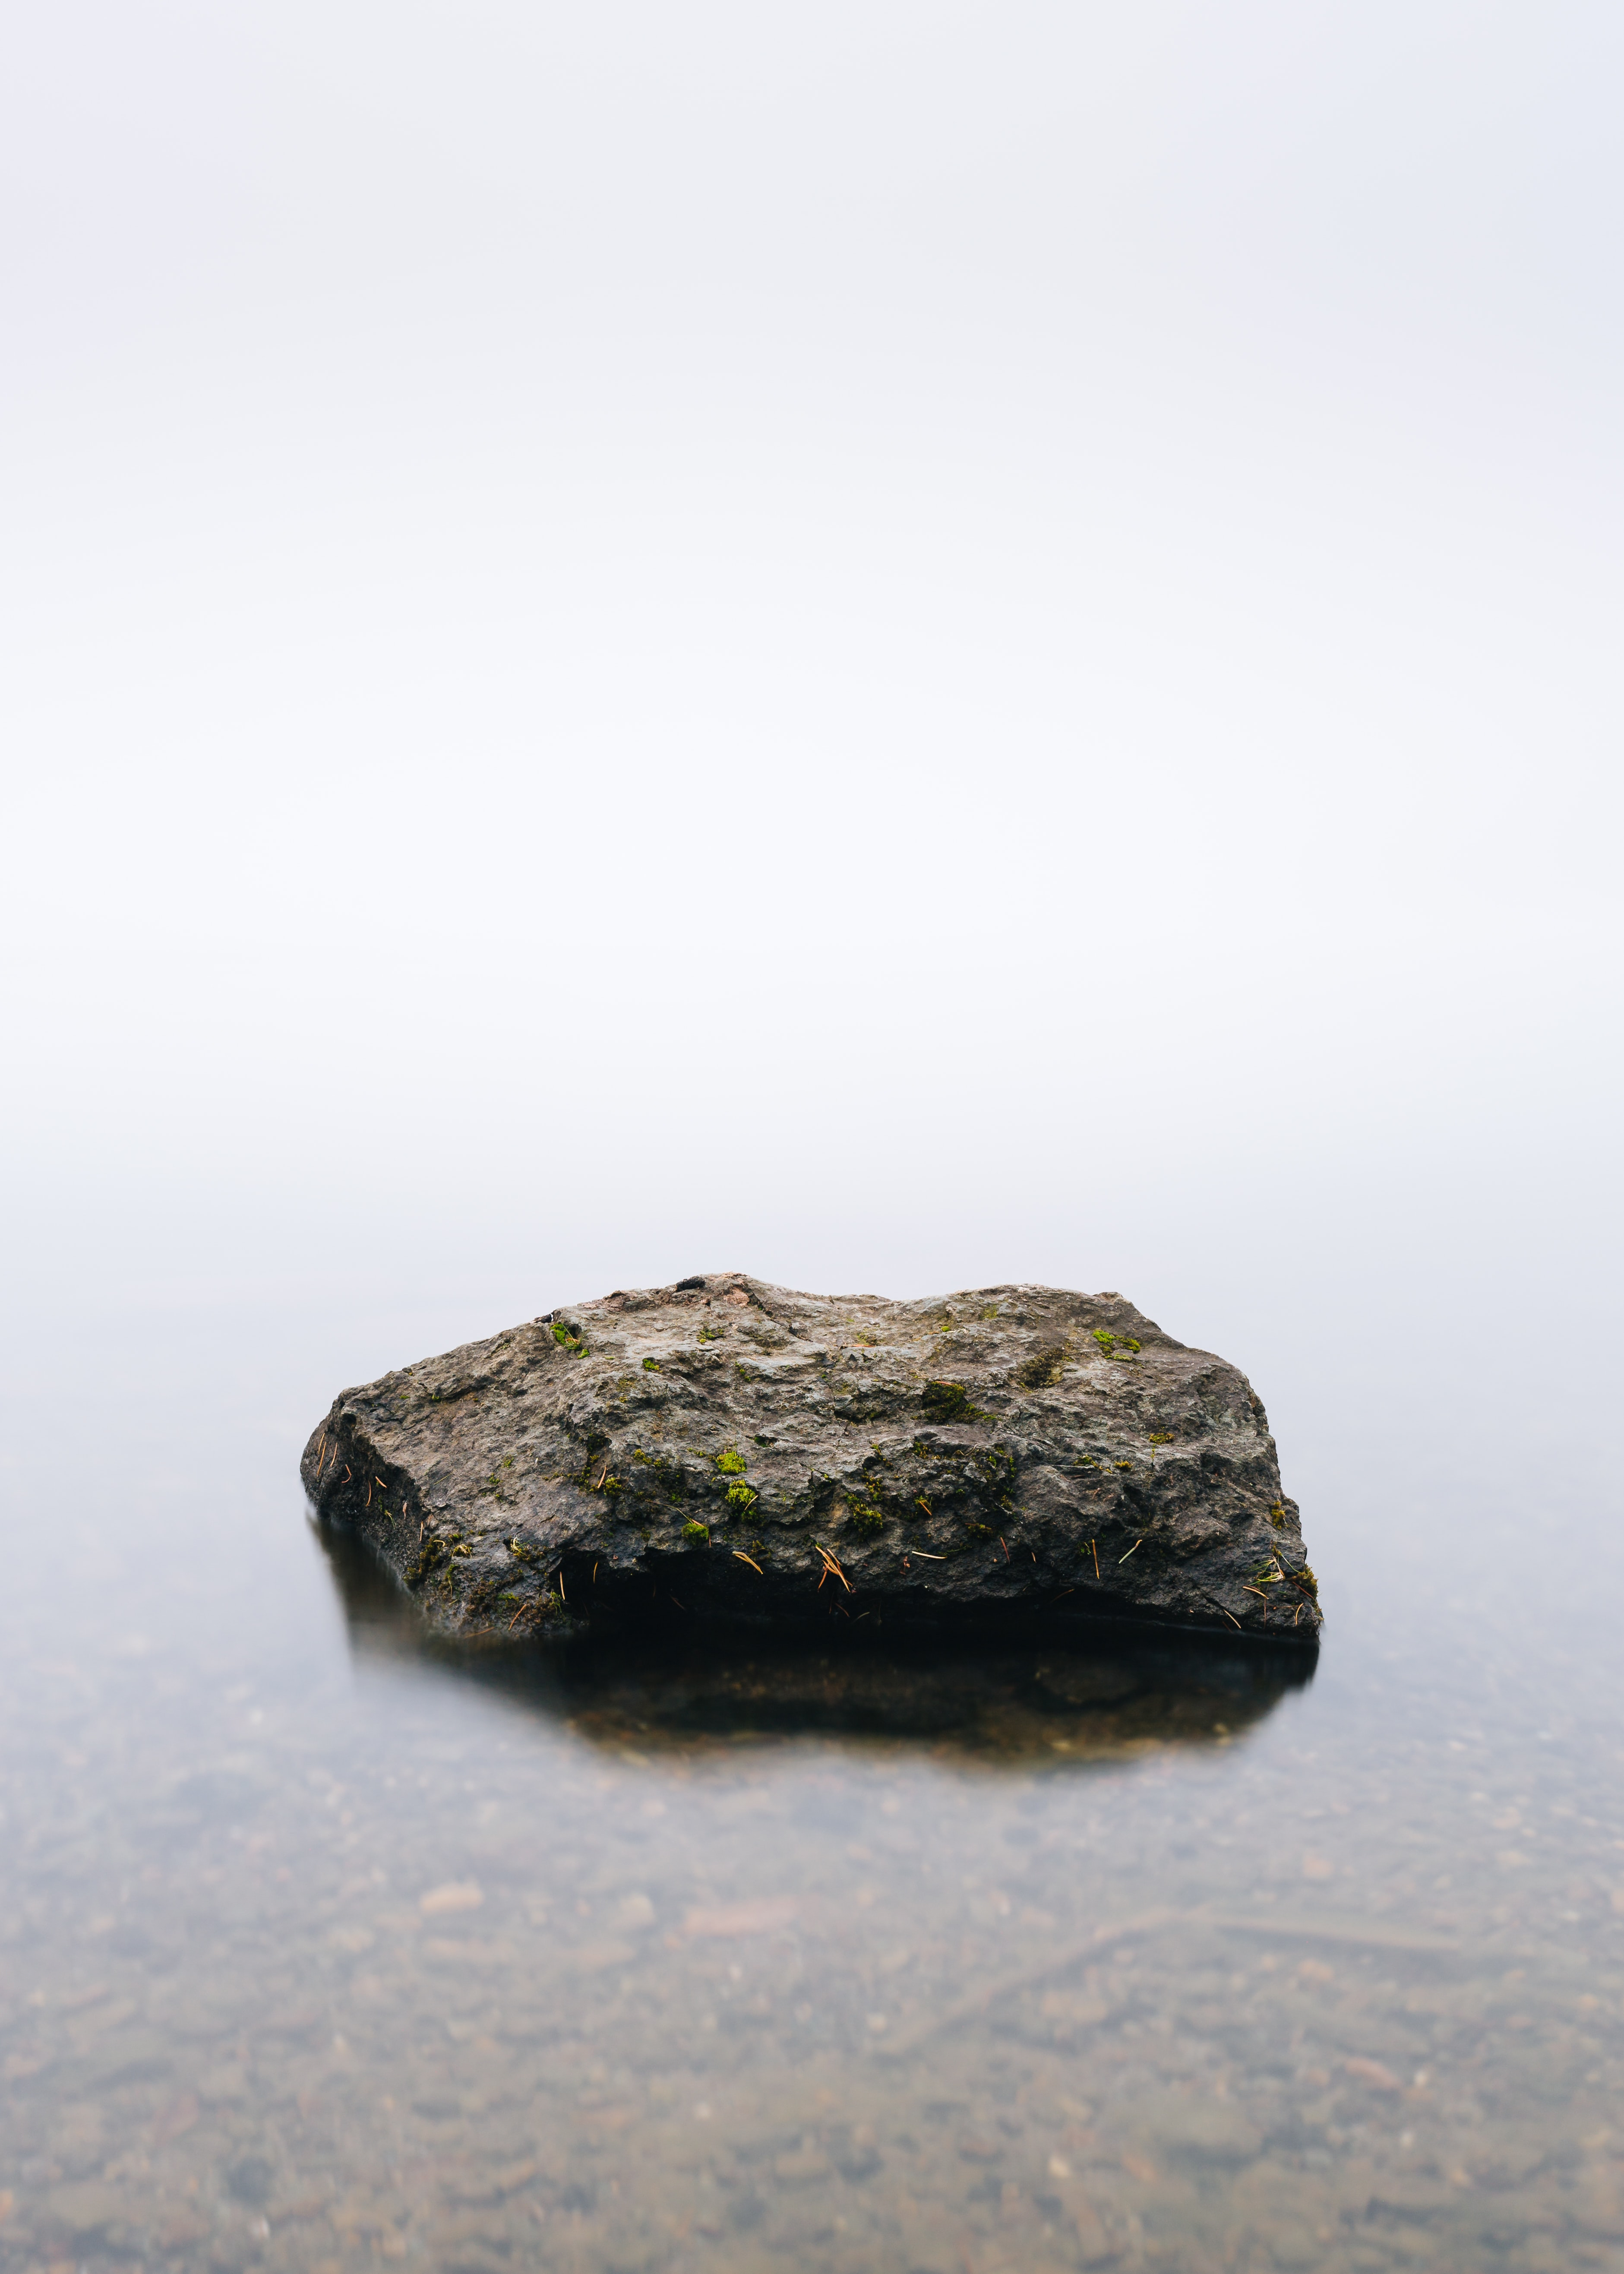 brown stone in body of calm water